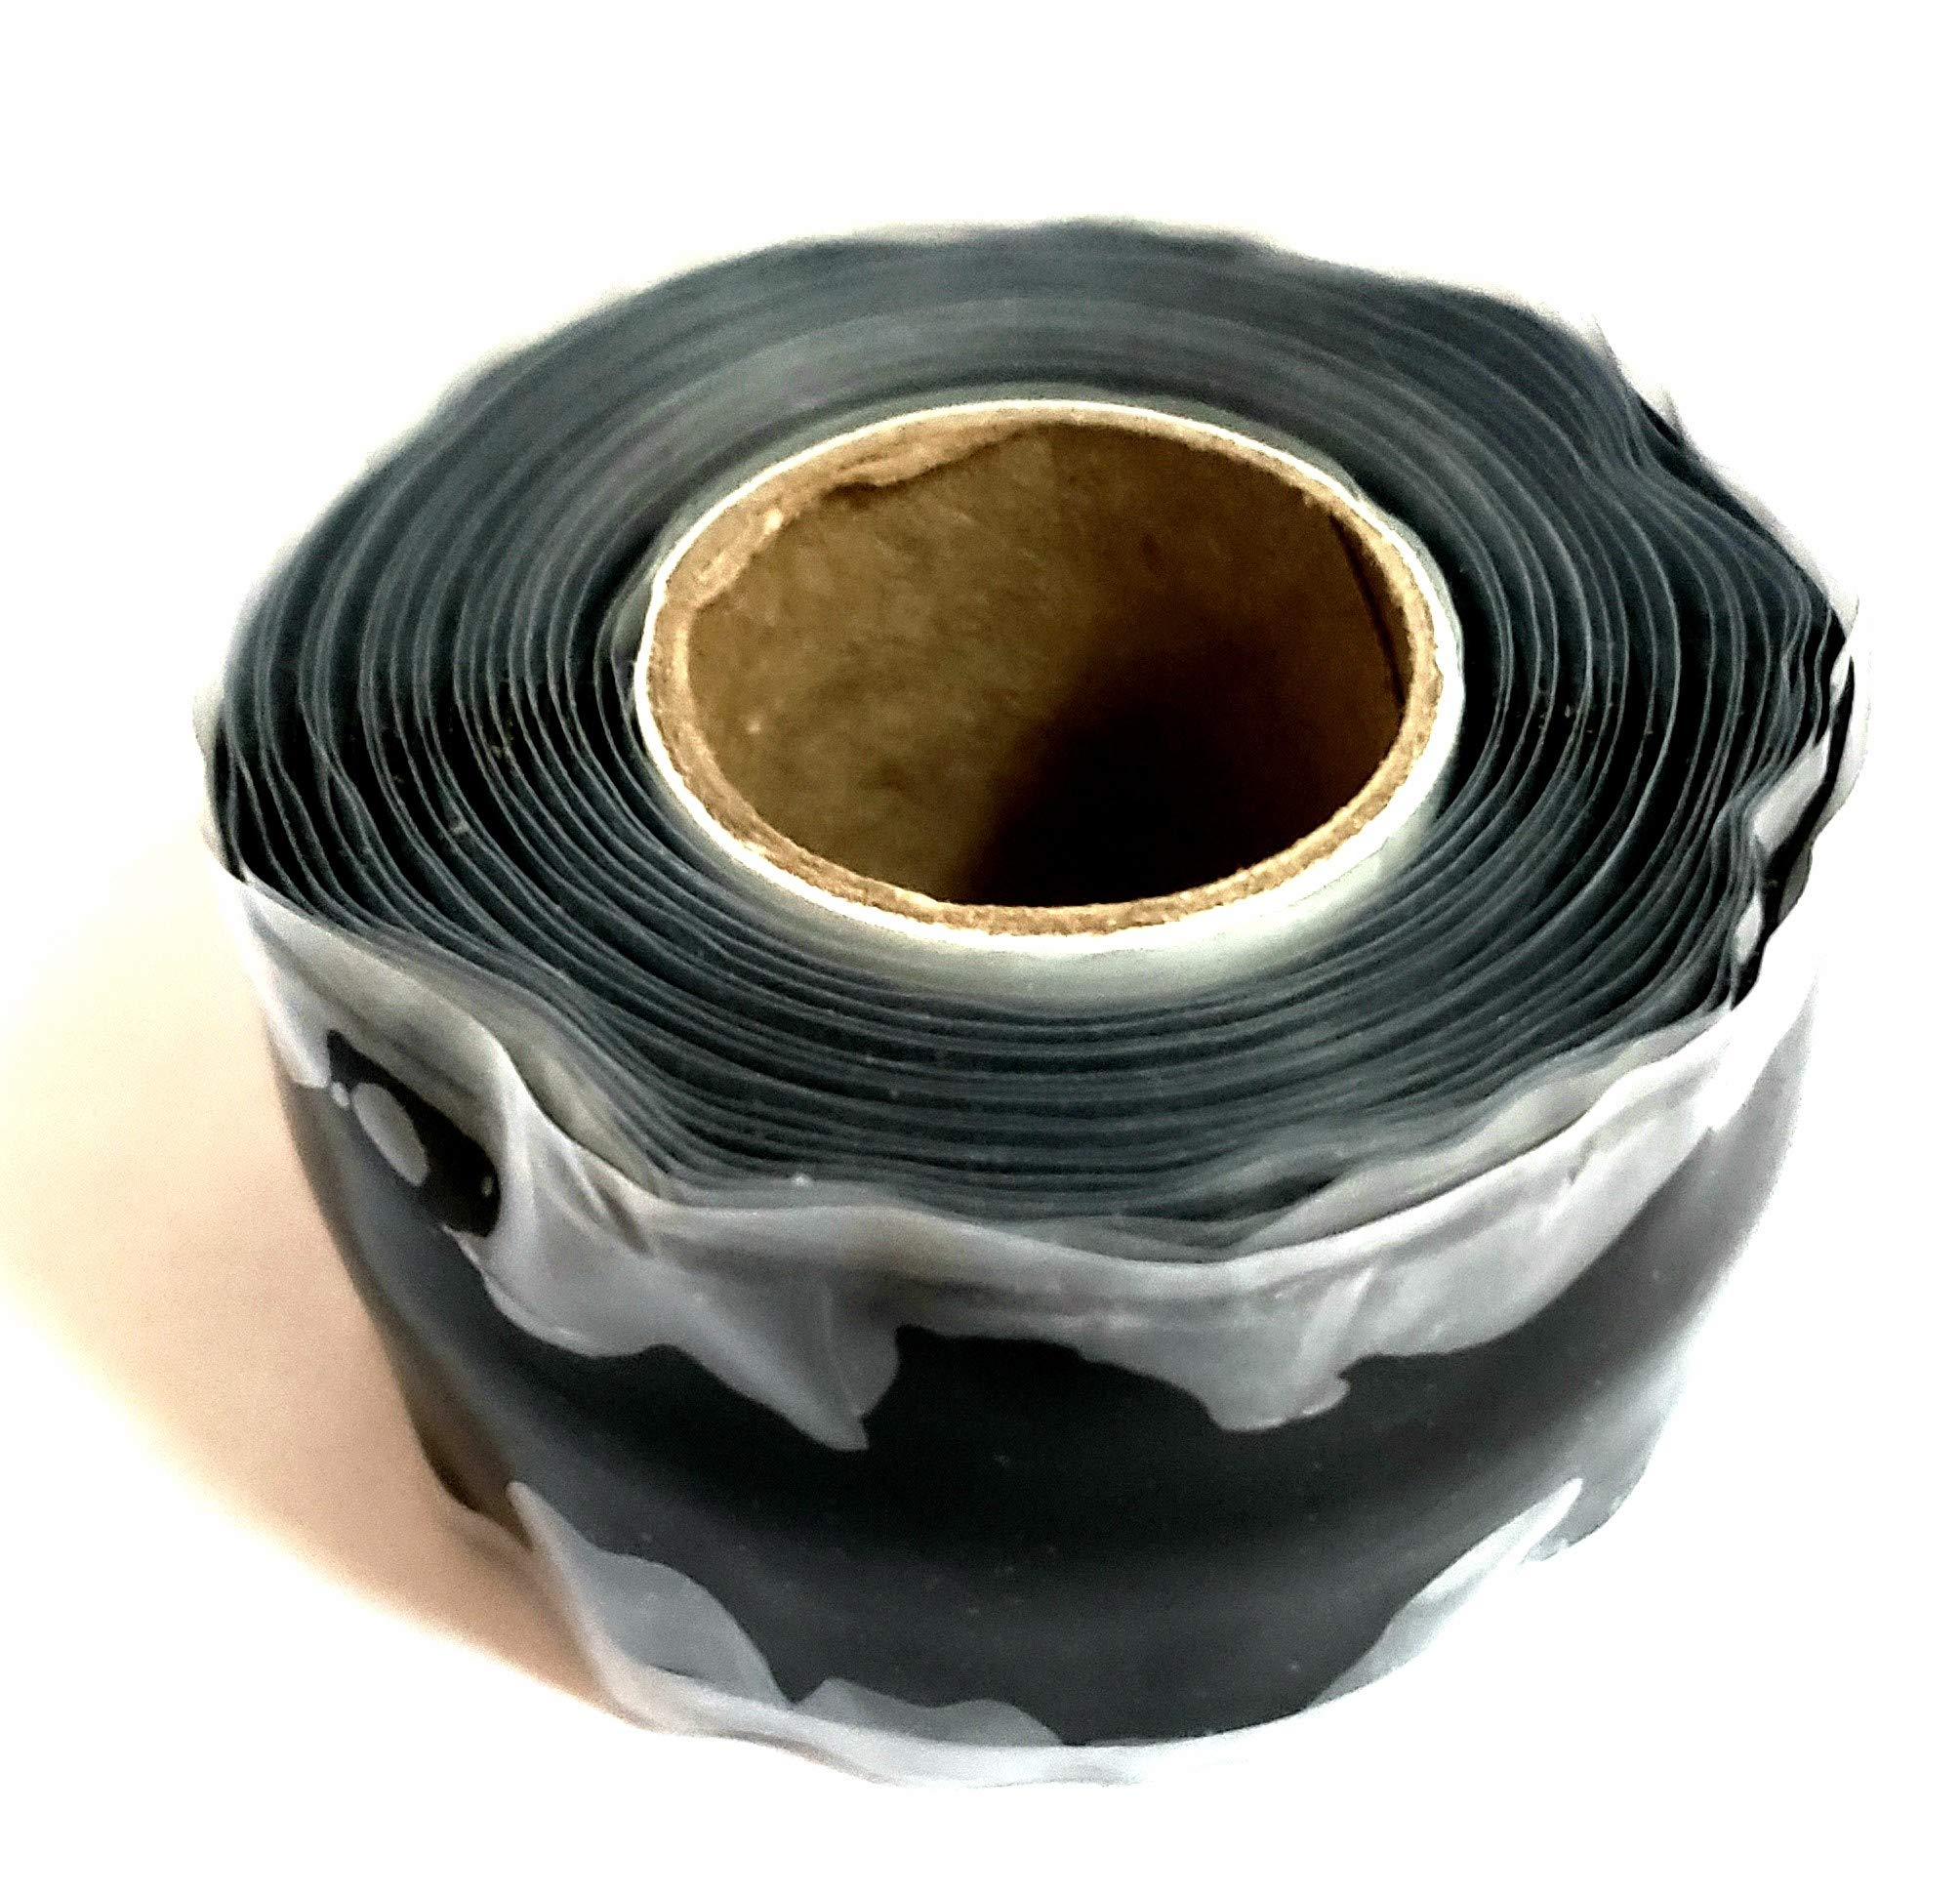 Bonsai Raffia Tape - Streatches 300% - Used to Help Bend Branches (Black)